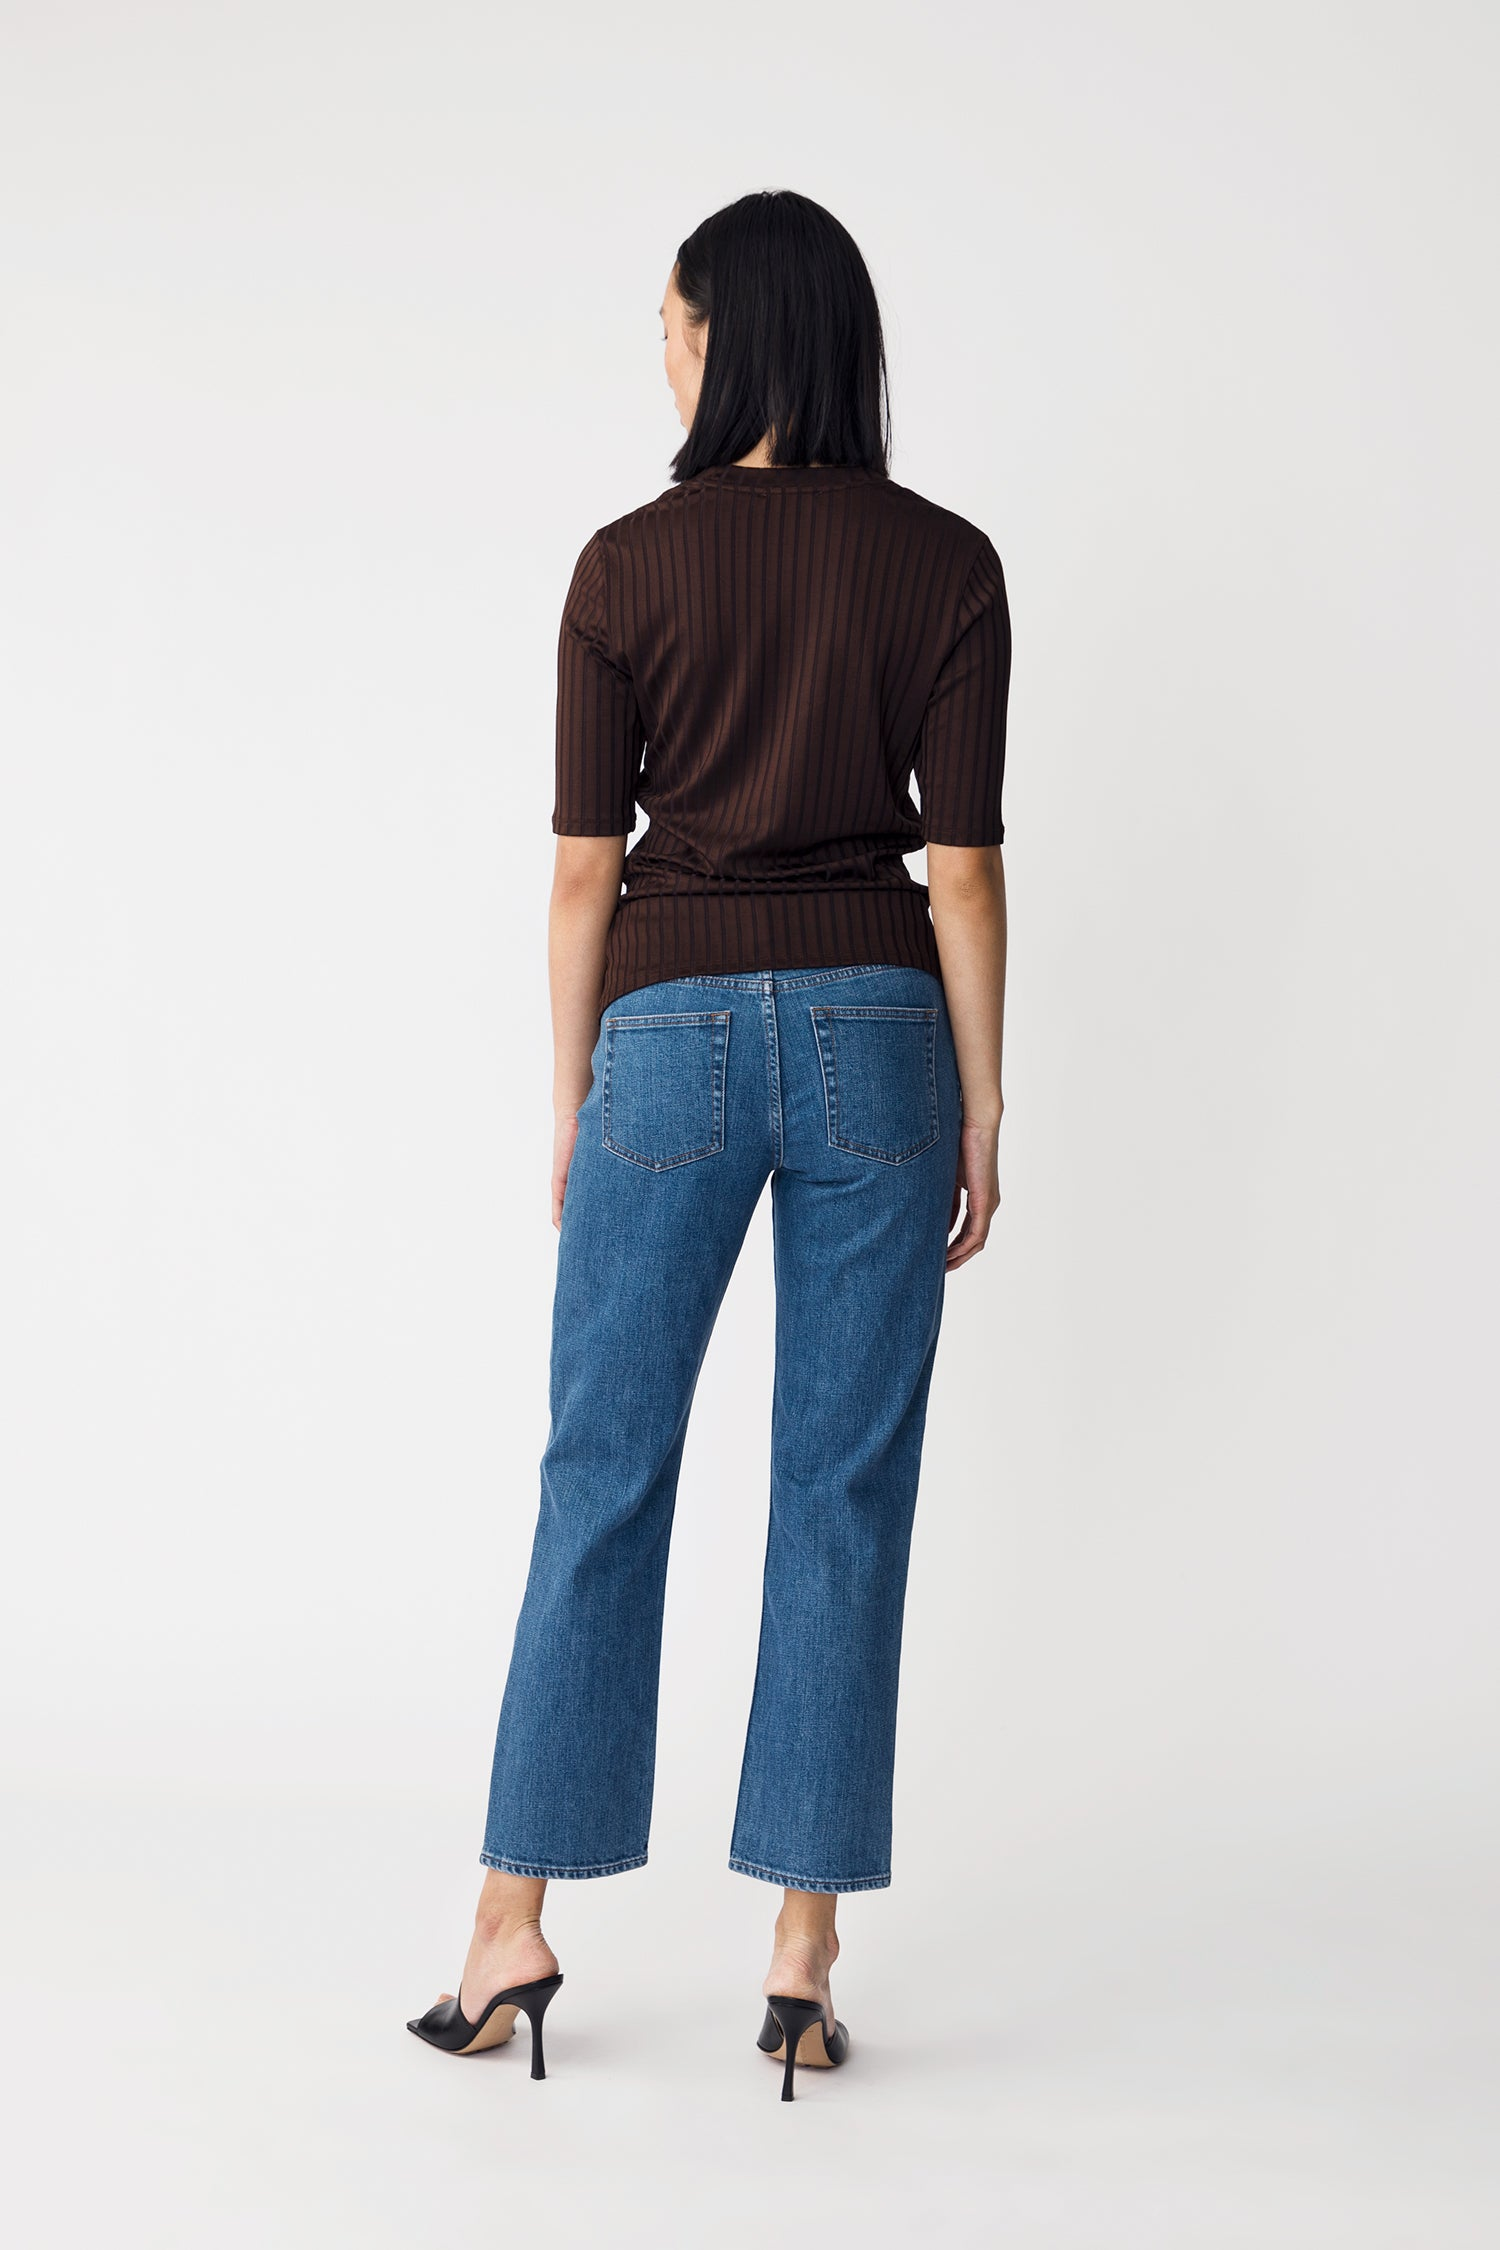 PERNILLE TOP - DARK BROWN